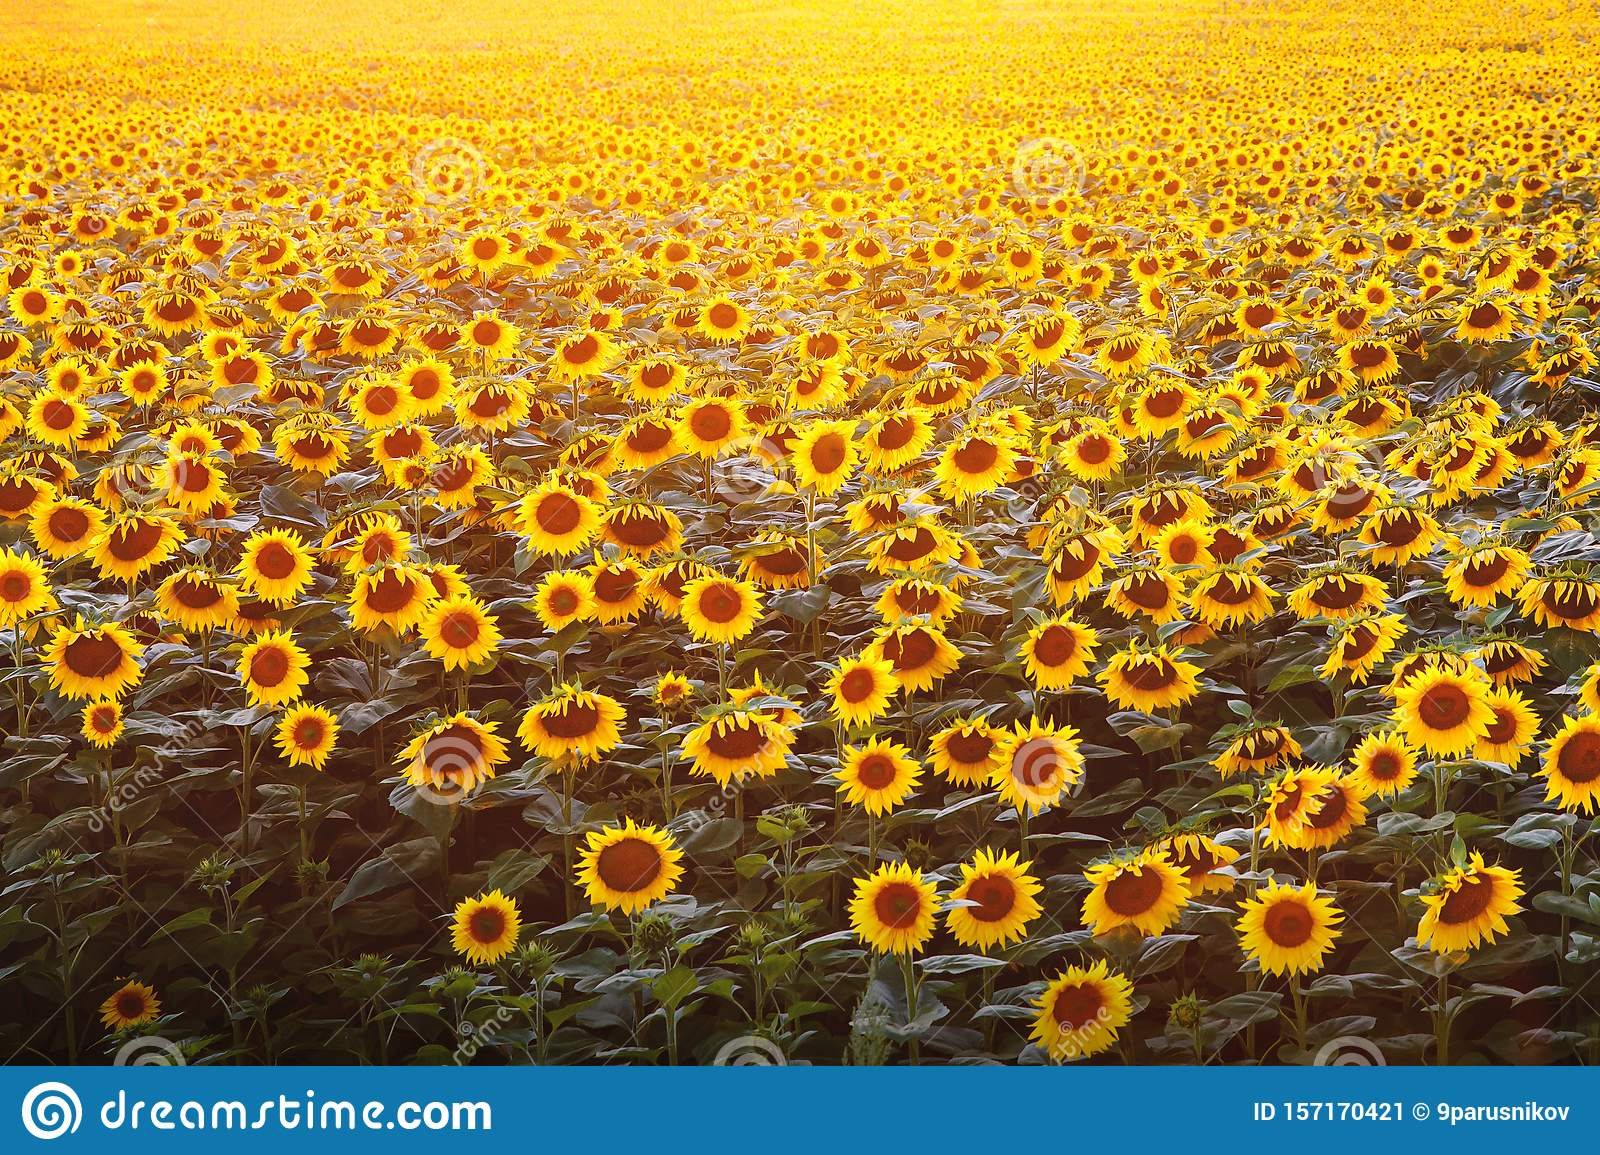 Background With A Lot Of Flowers Sunflower Wallpaper Stock Image Image Of Plant Nature 157170421